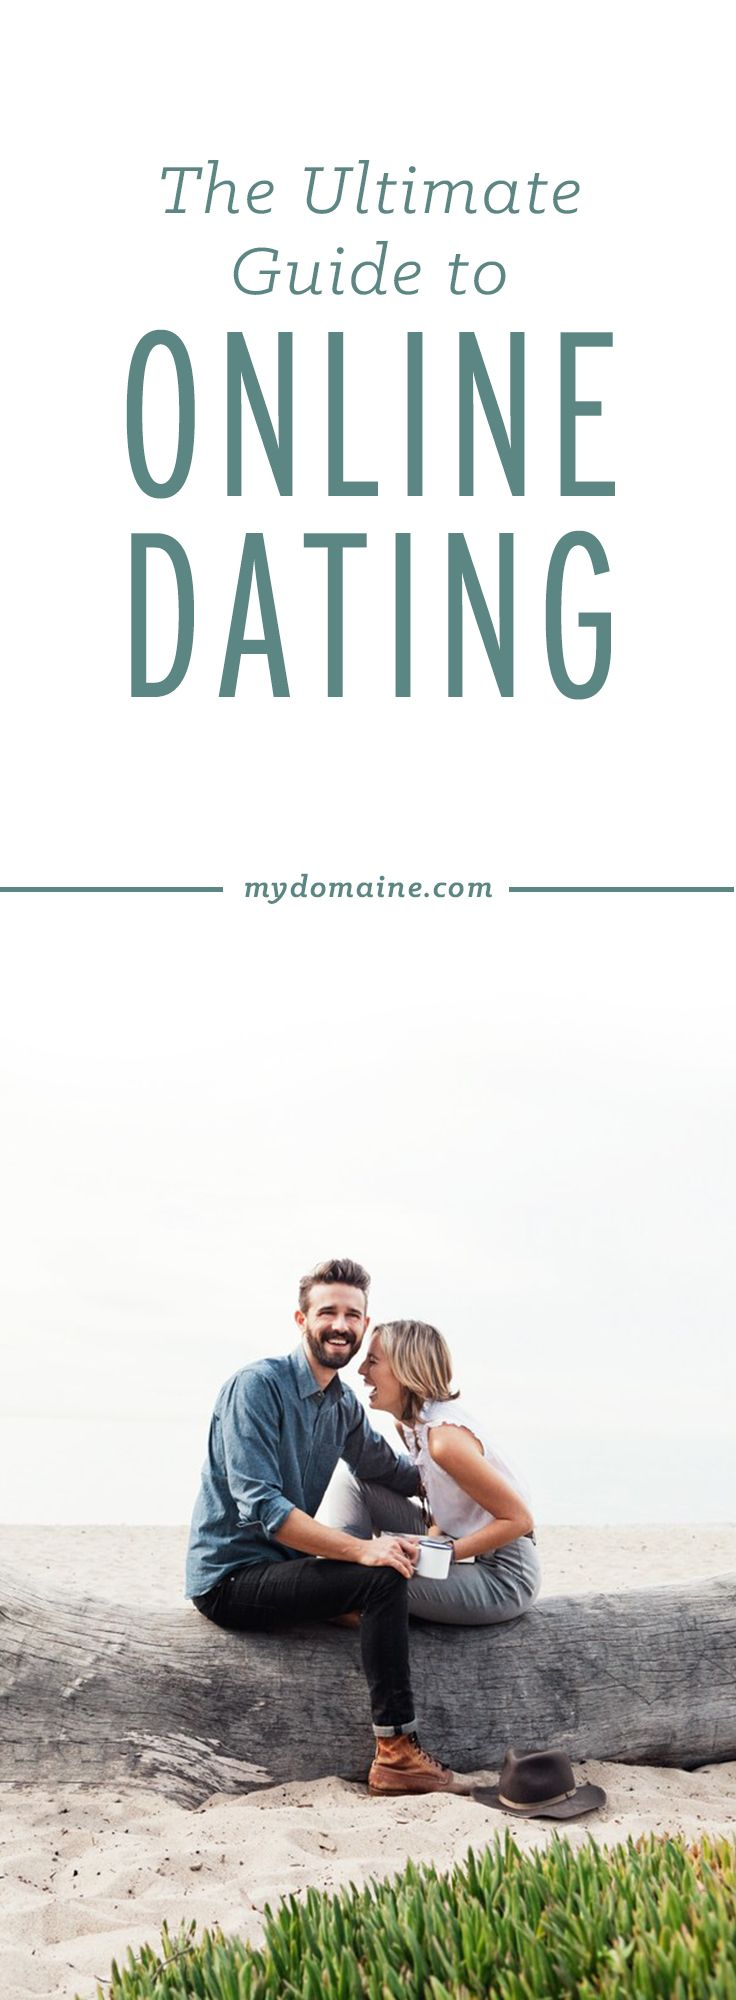 Tips to online dating